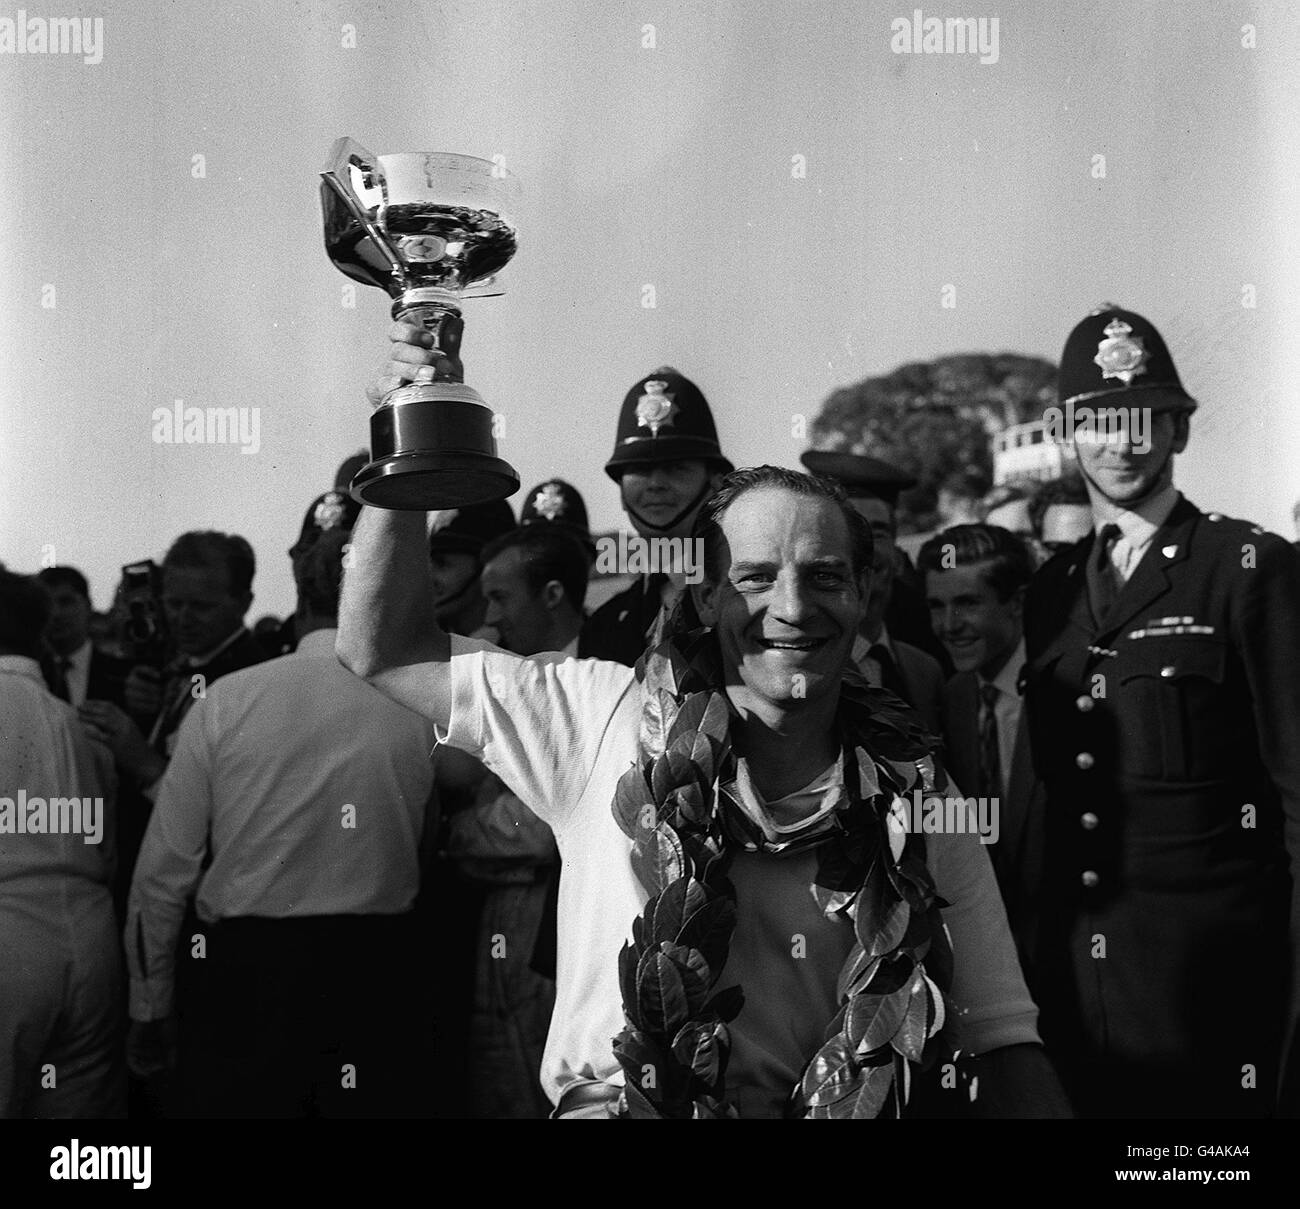 PA NEWS PHOTO 19/8/62 : WEARING THE VICTORS LAURELS INNES IRELAND HOLDS THE CUP ALOFT AFTER WINNING THE 27TH RAC - Stock Image